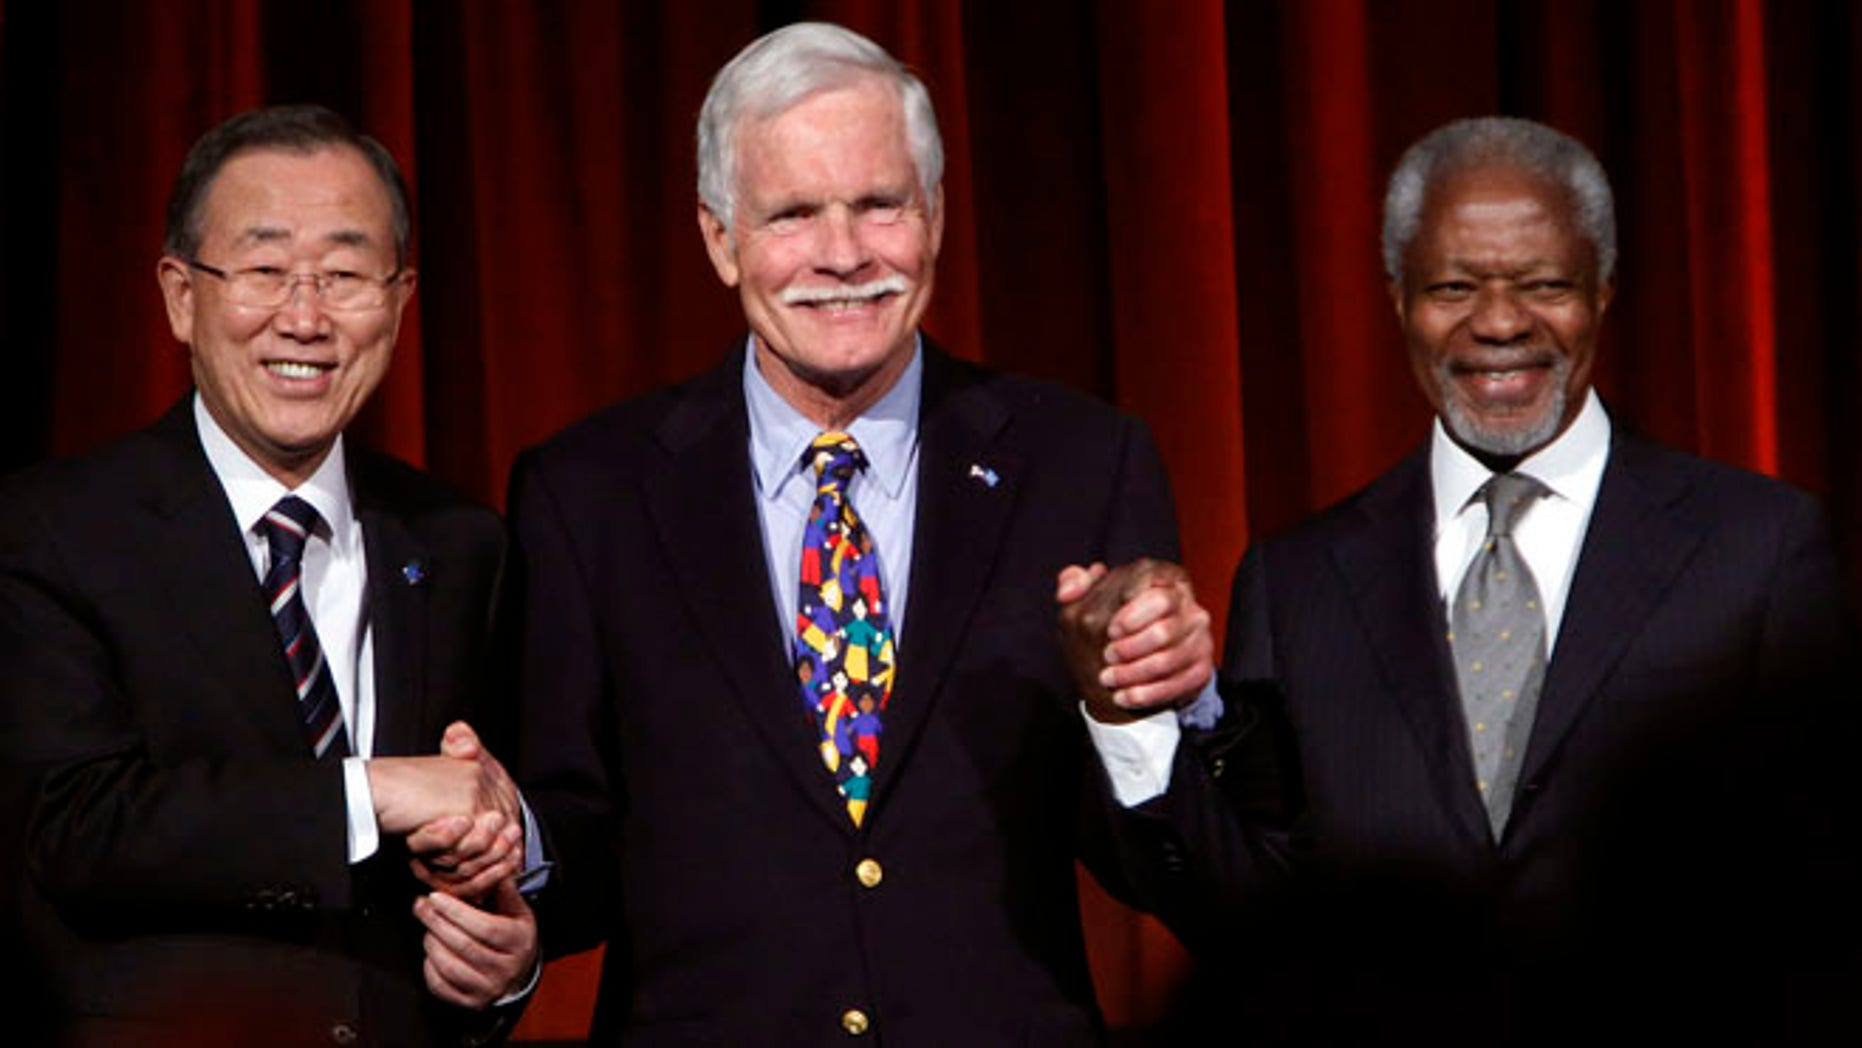 Oct. 16, 2012: U.N. Secretary-General Ban Ki-moon (L), U.N. Foundation founder and chairman Ted Turner (C) and former U.N. Secretary-General Kofi Annan pose as they celebrate the 15th anniversary of Turner's historic $1 billion gift to the U.N. at the Global Leadership Awards dinner hosted by the U.N. Foundation and United Nations Association-USA in New York. (Reuters)